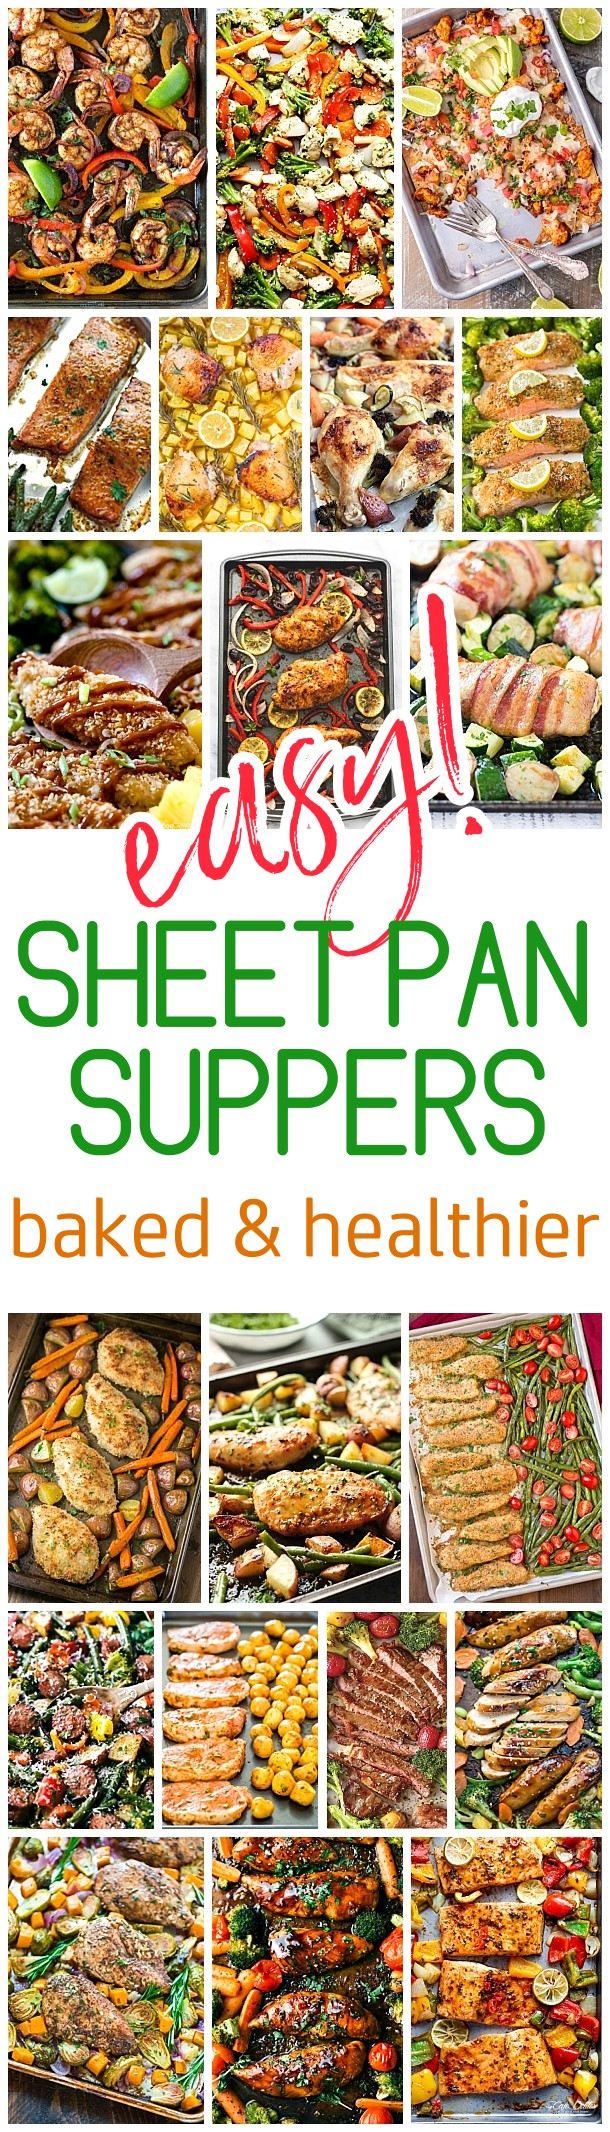 Easy One Sheet Pan Healthier Baked Family Suppers Recipes via Dreaming in DIY - Cleanup and Meal Prep is a BREEZE for quick lunch and simple dinner options. Using less oils and grease, these baked options will become your family favorites! #sheetpansuppers #sheetpanrecipes #sheetpandinners #onepanmeals #healthyrecipes #mealprep #easyrecipes #healthydinners #healthysuppers #healthylunches #simplefamilymeals #simplefamilyrecipes #simplerecipes